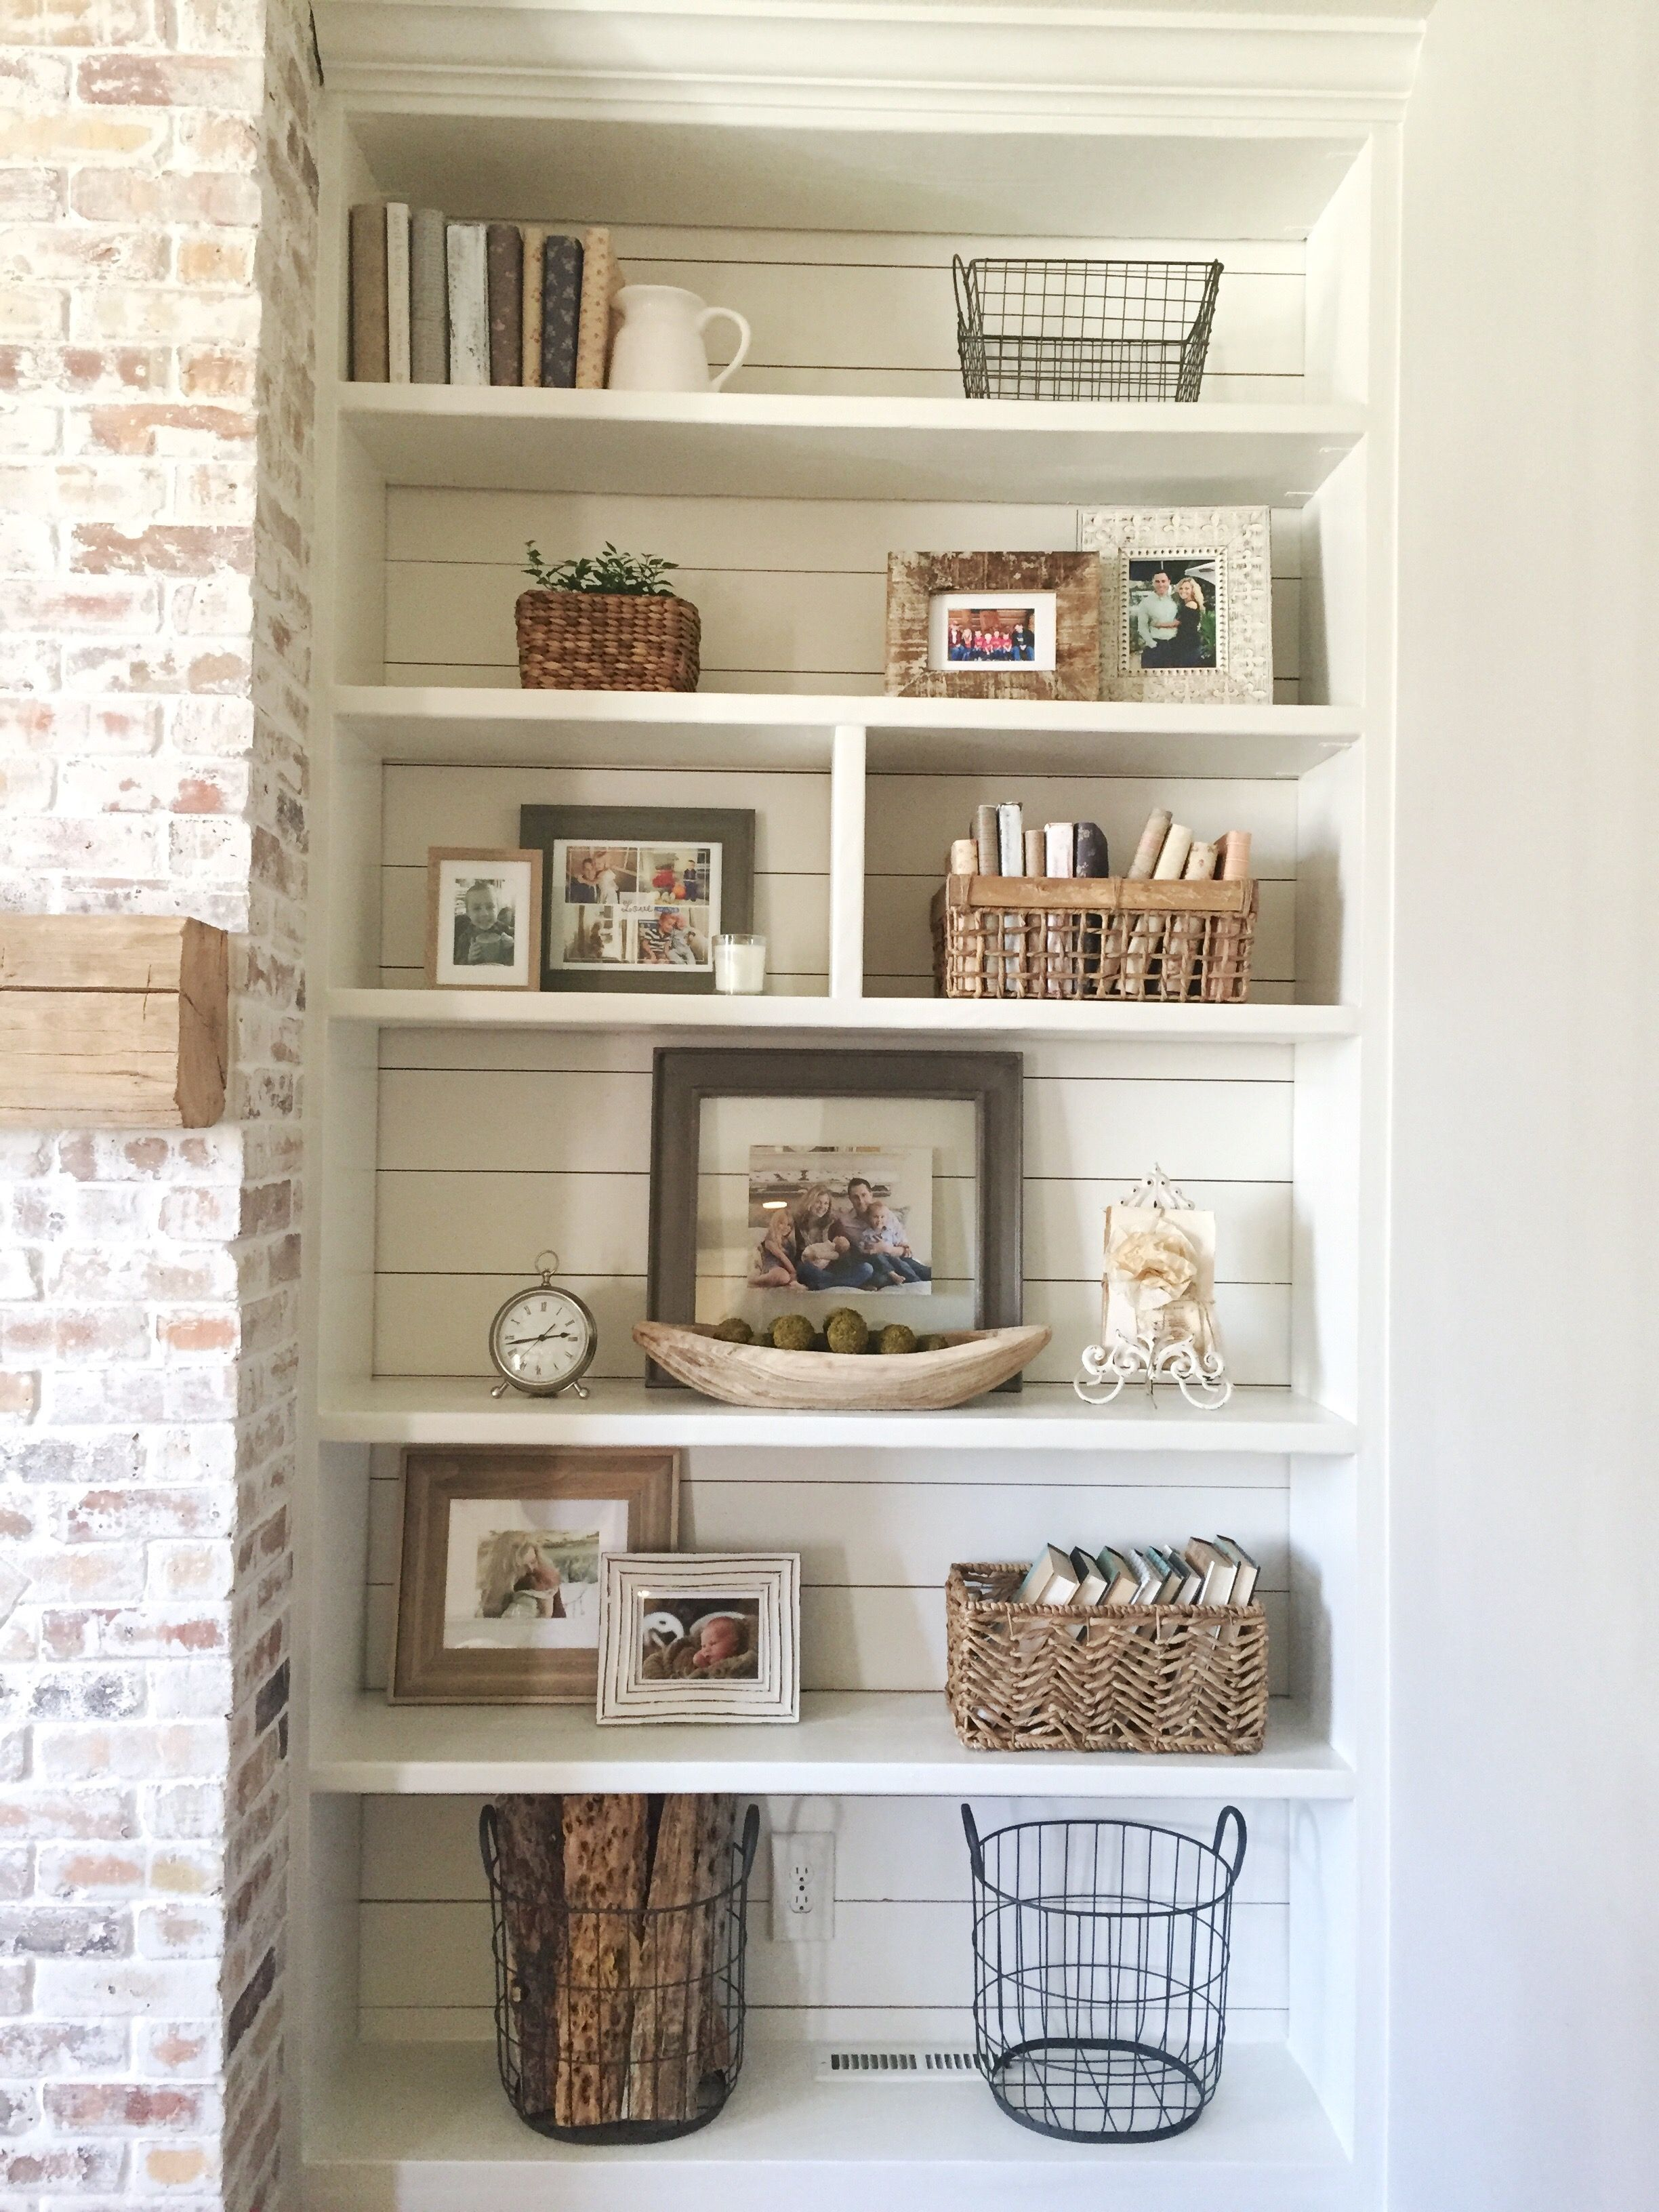 Built In Bookshelves Styling And Decor Shiplap Whitewash